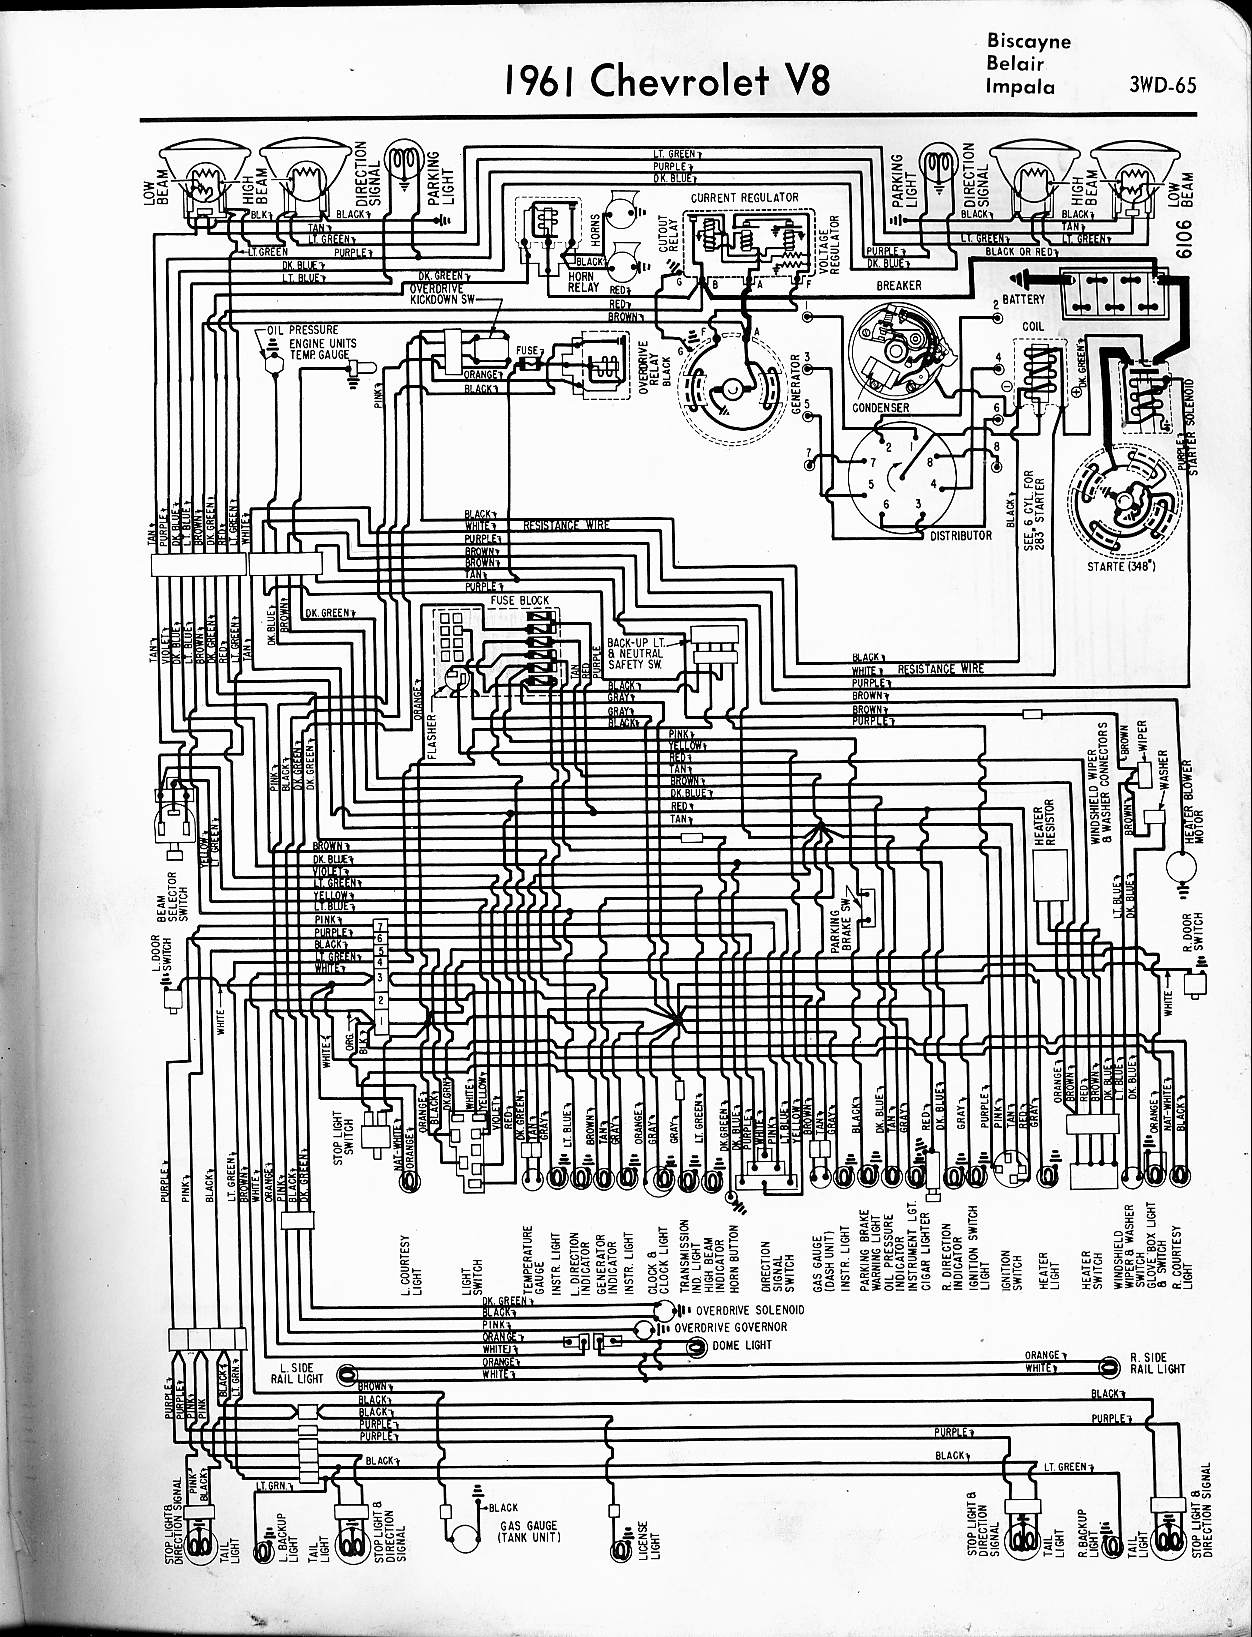 2002 Chevy Impala Engine Wiring Harness Diagram Diagrams 57 65 Rh Oldcarmanualproject Com 1965 Smallboxdesigns Co 2012 2004